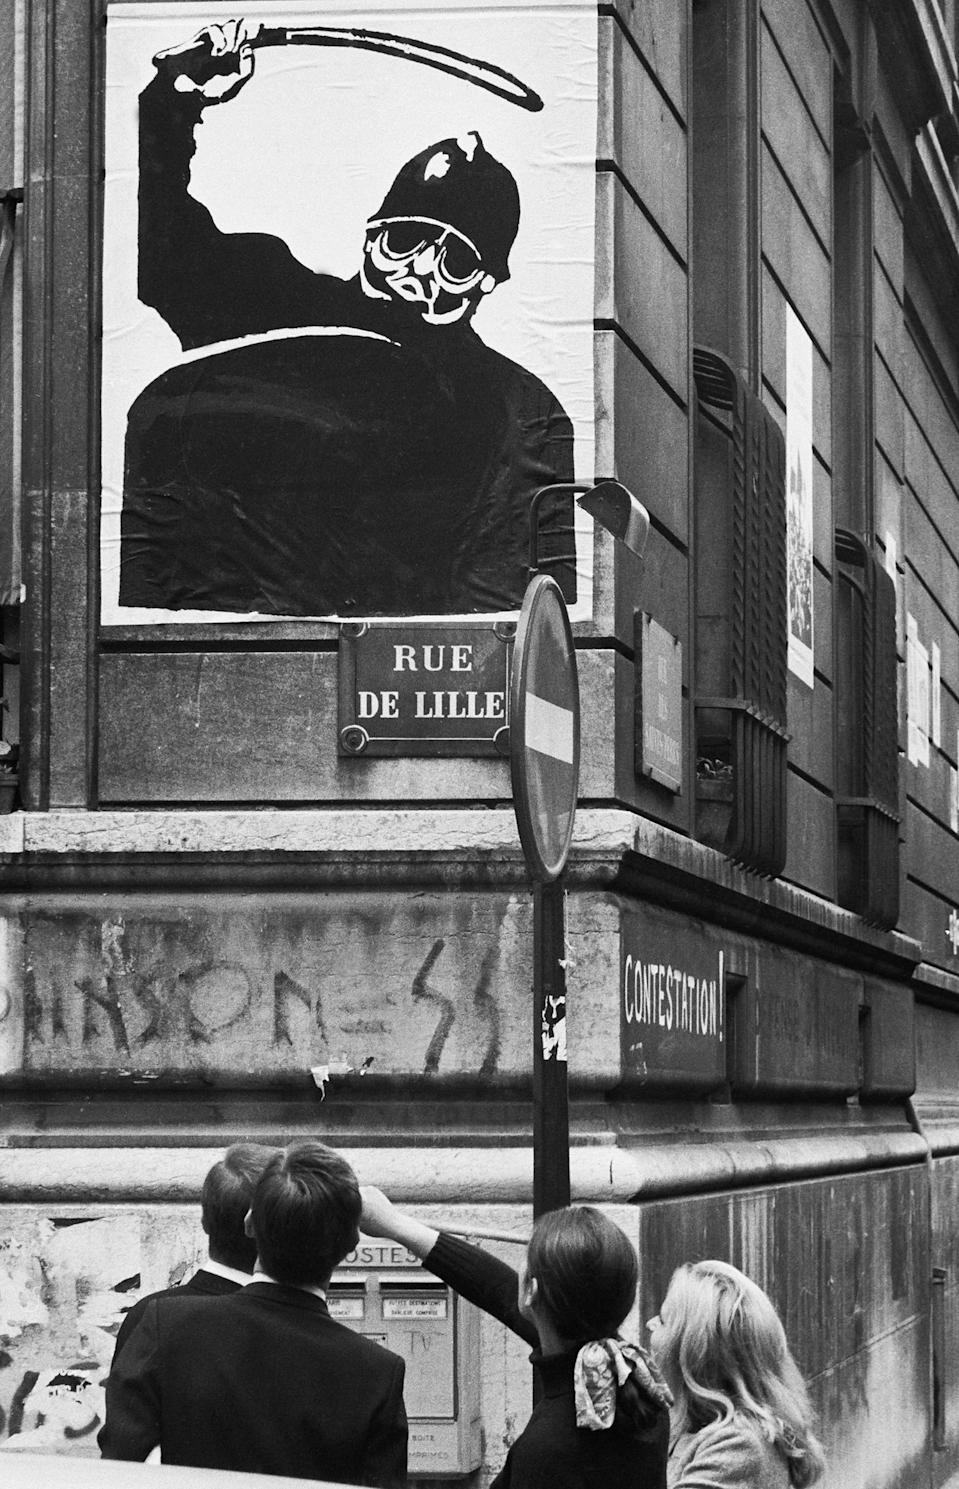 <p>A May '68 poster is seen on a wall of the School of Oriental Languages, Rue de Lille, Paris, May 7, 1968. (Photo: Gökşin Sipahioğlu/SIPA) </p>